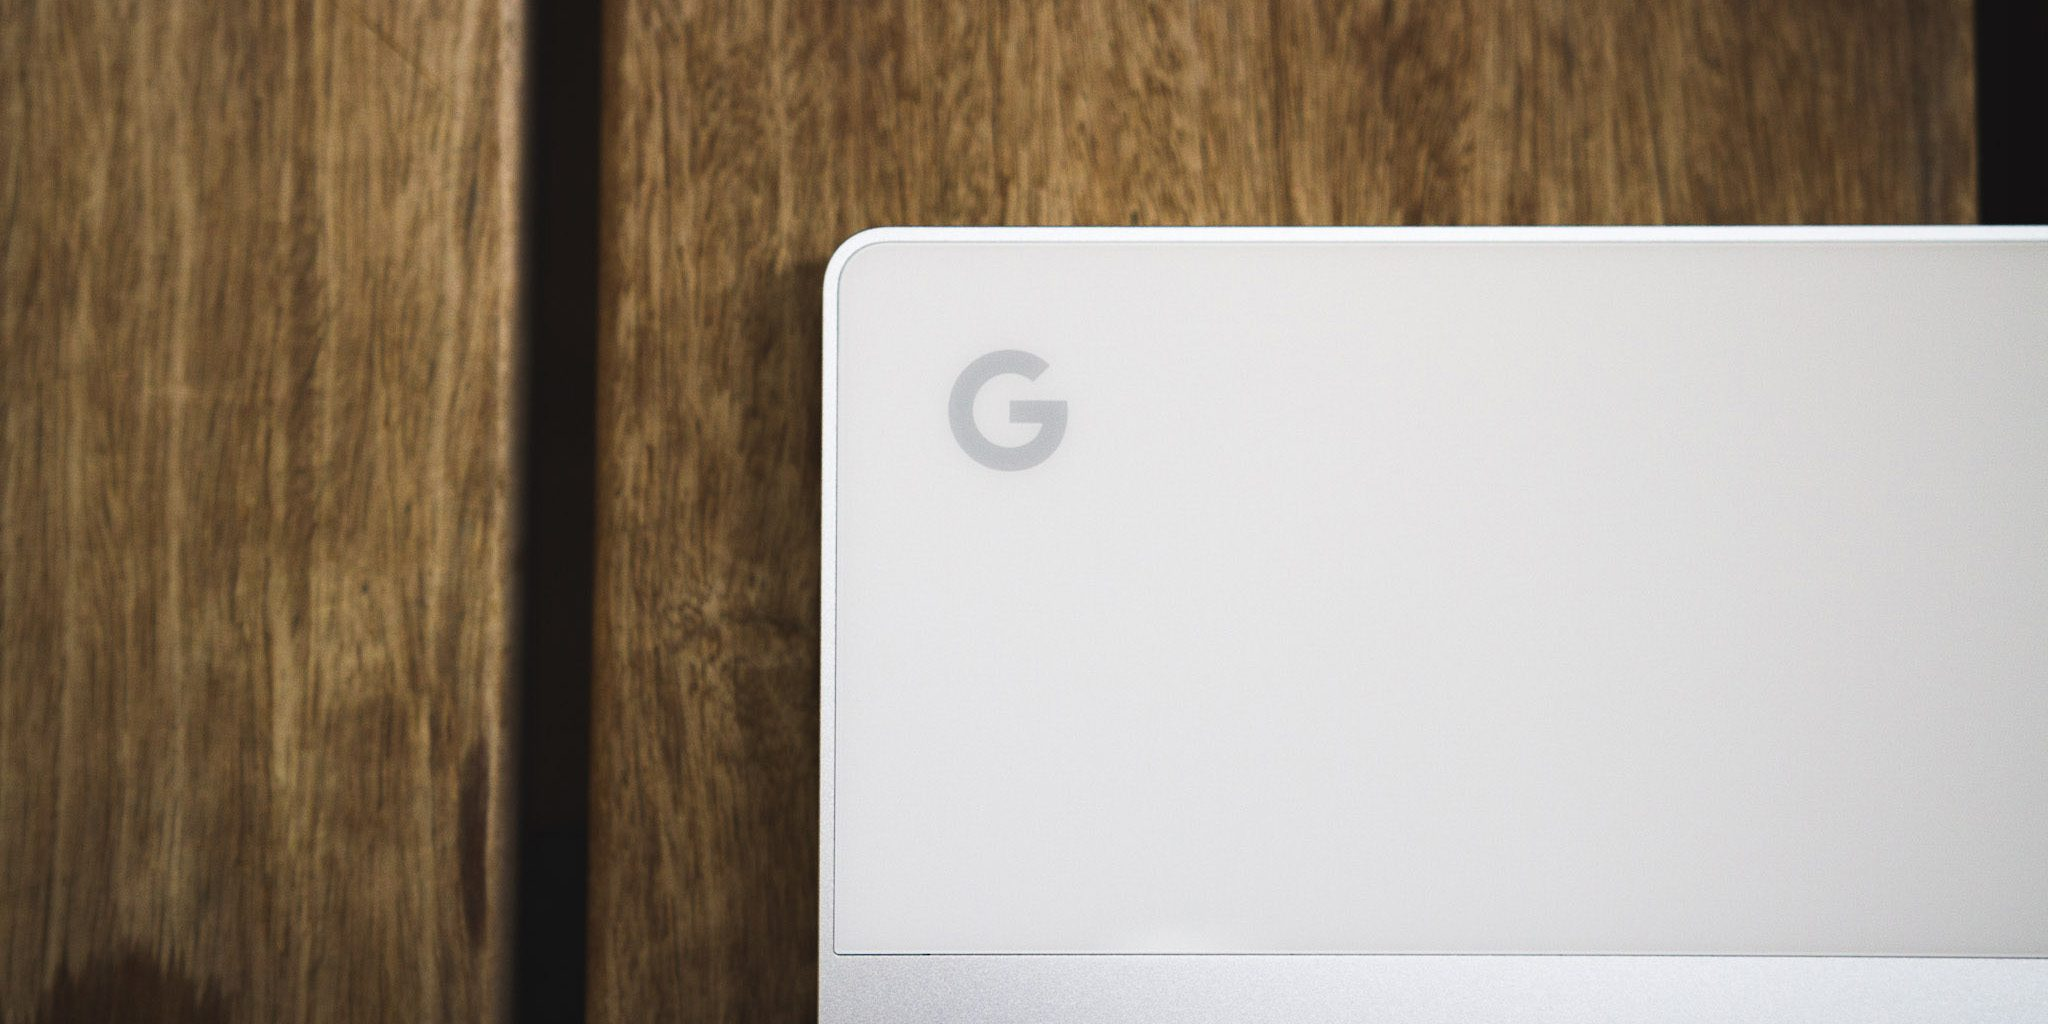 As a longtime Windows user, I made the switch to Chrome OS: How does